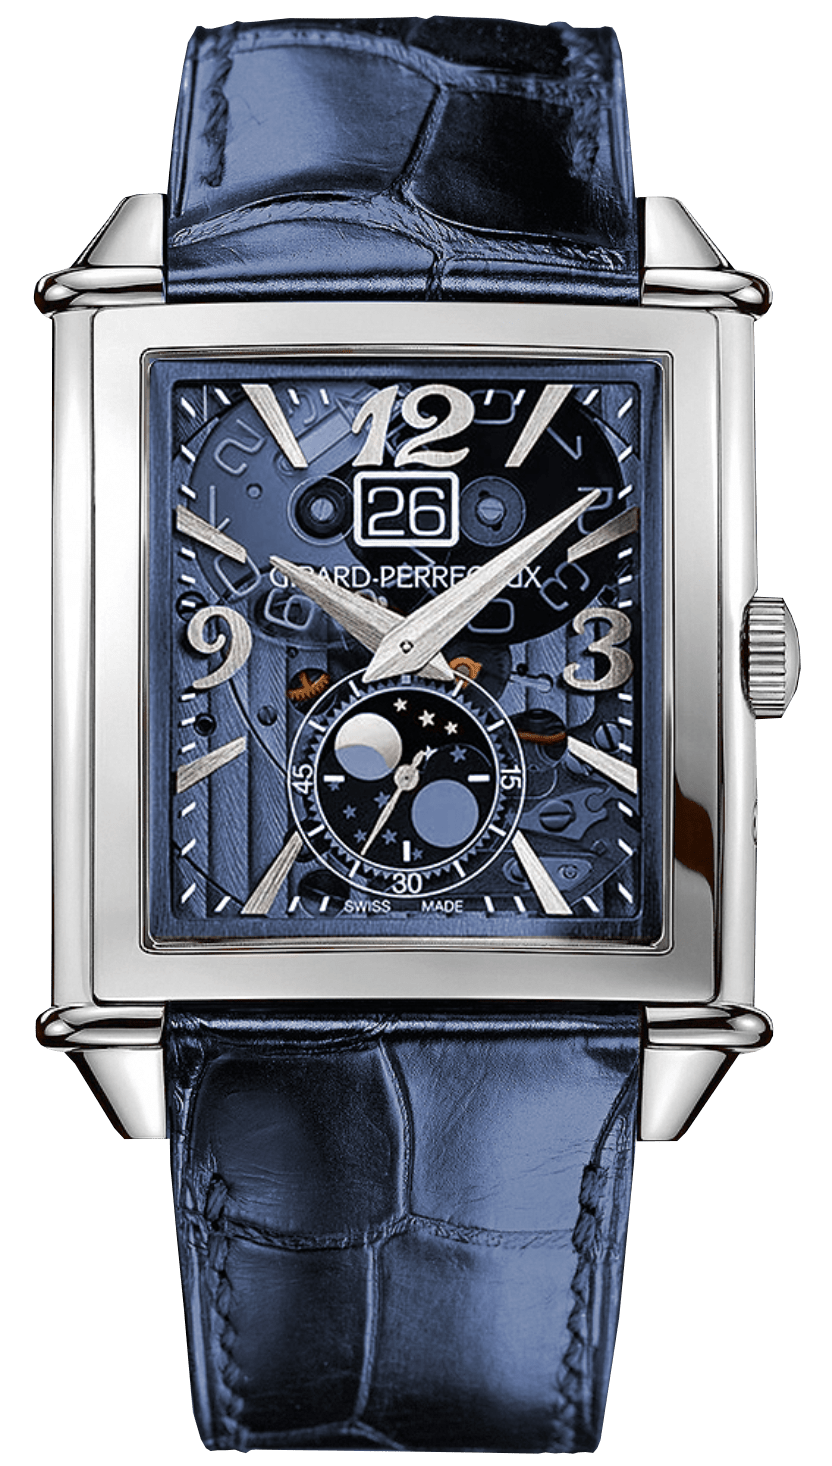 VINTAGE 1945 XXL, LARGE DATE AND MOON-PHASES